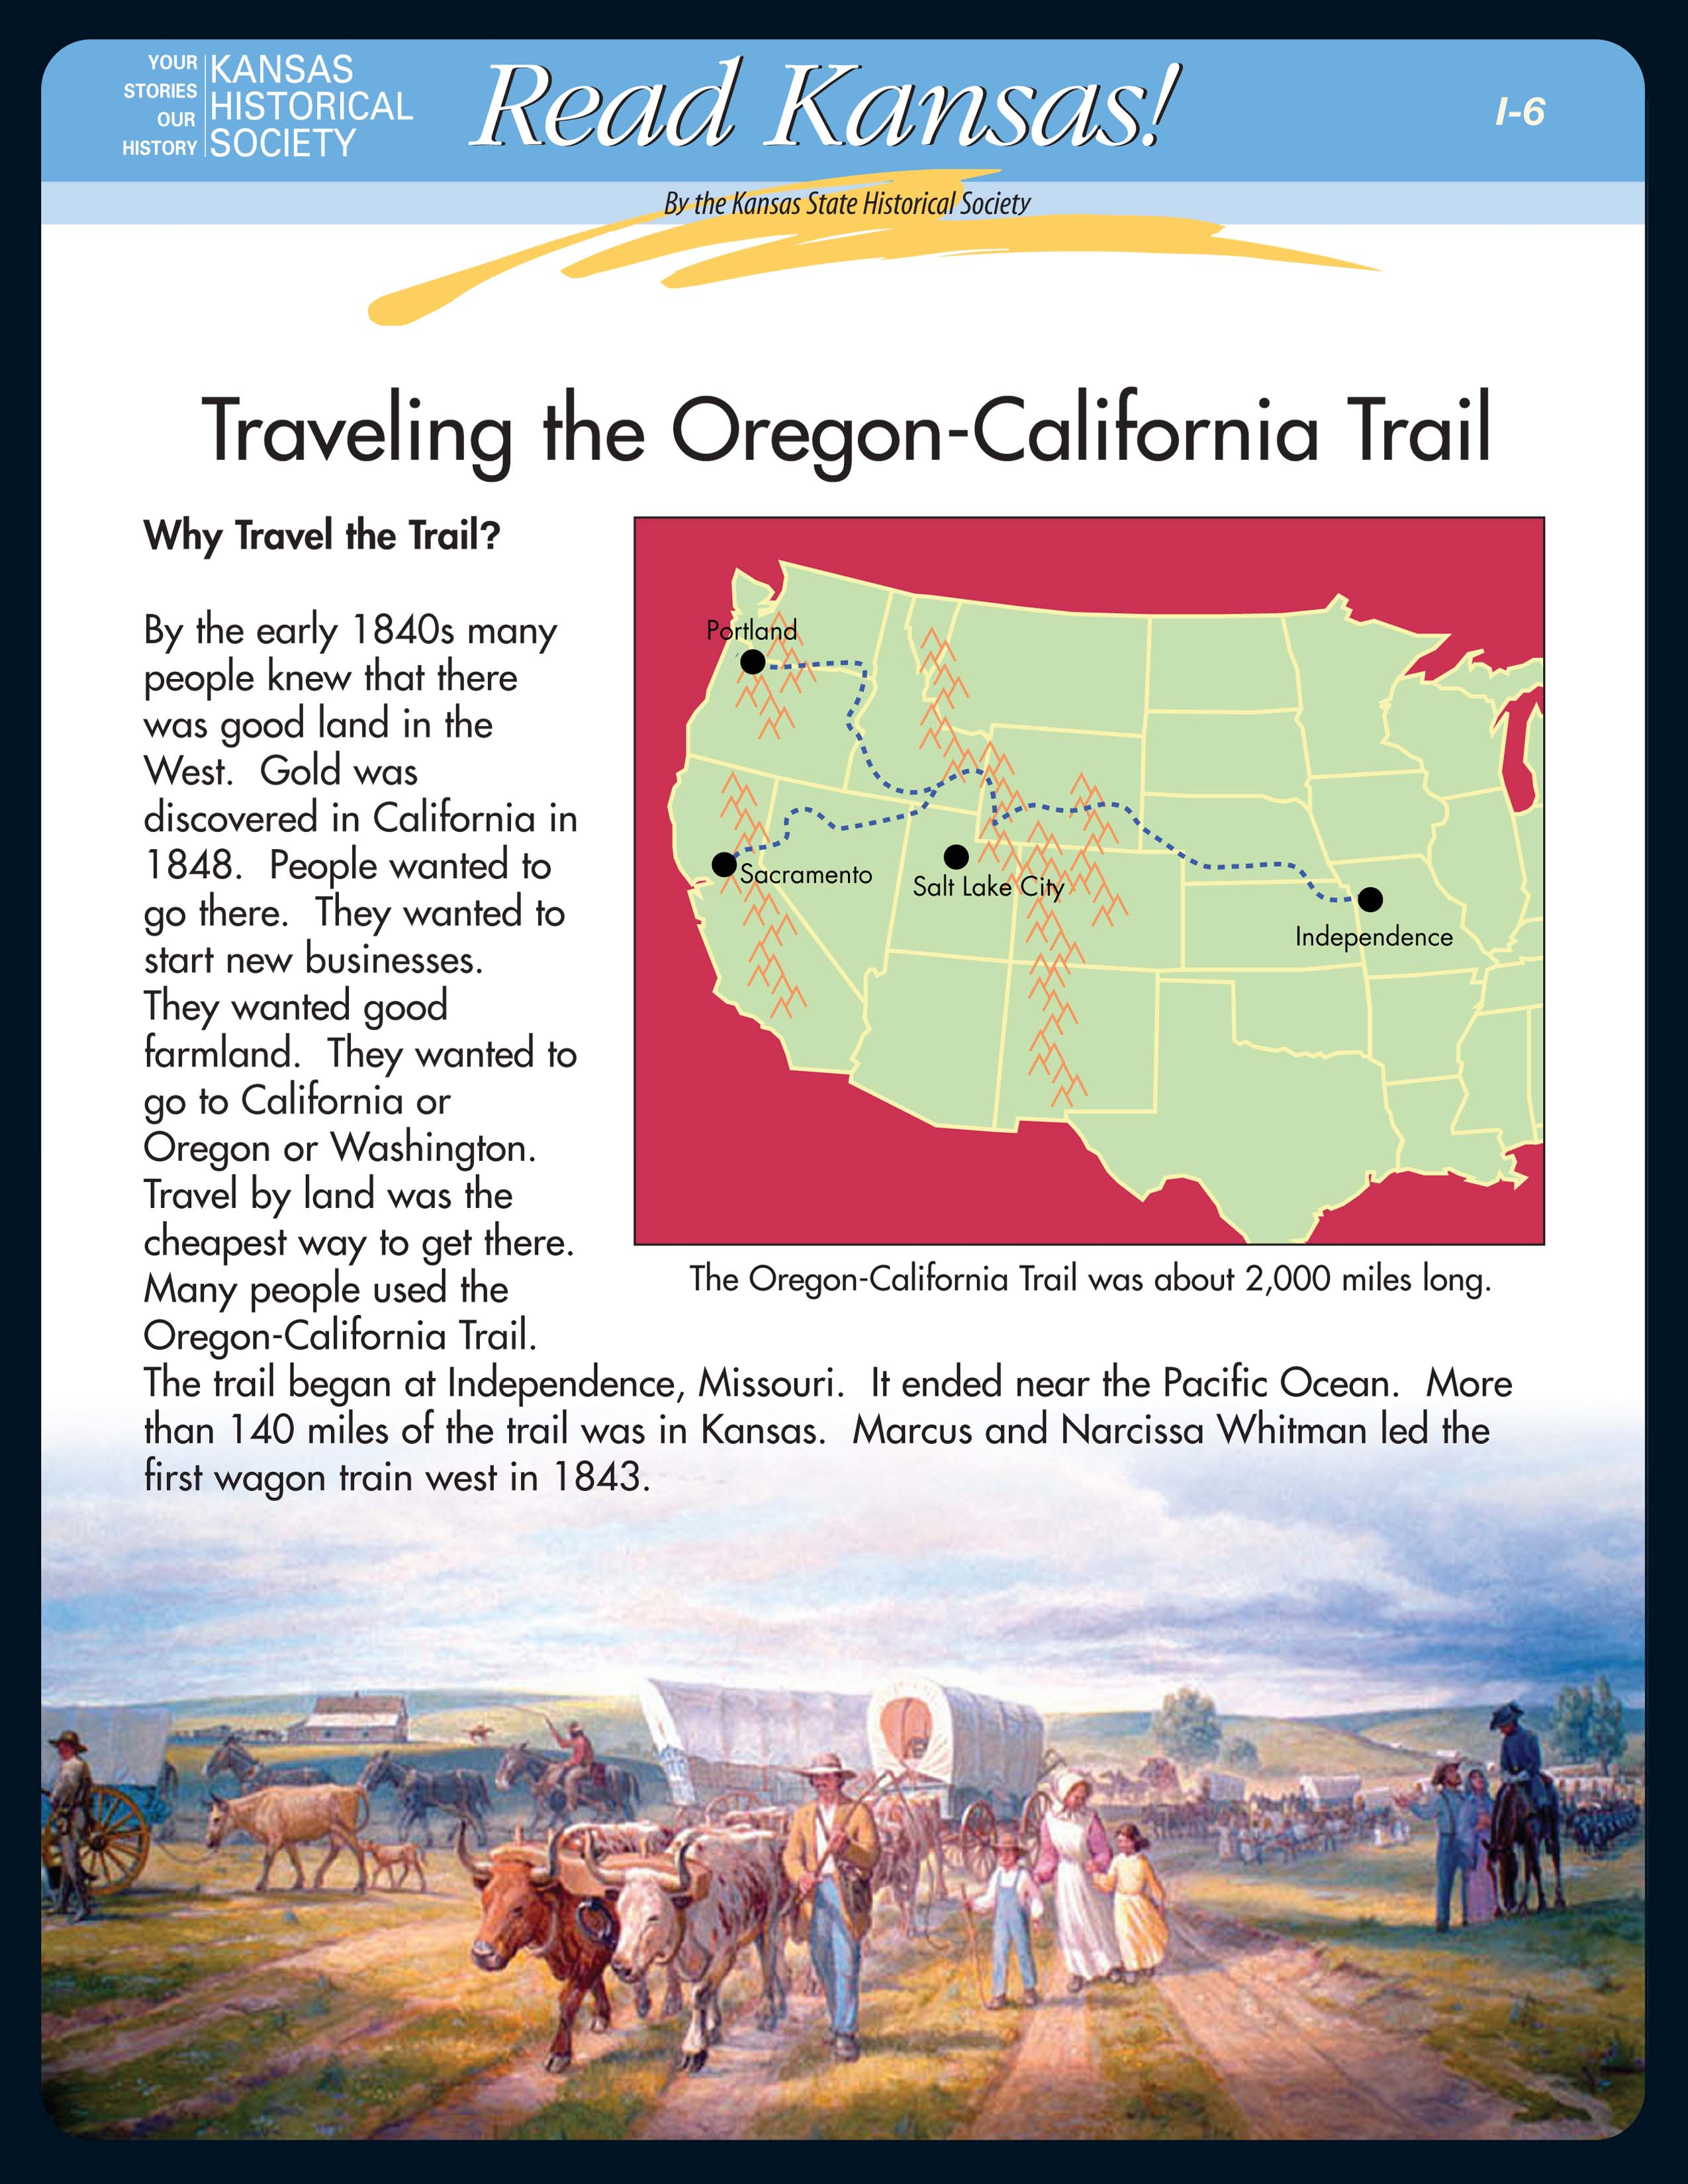 I - 6 Trade and Travel on the Overland Trails